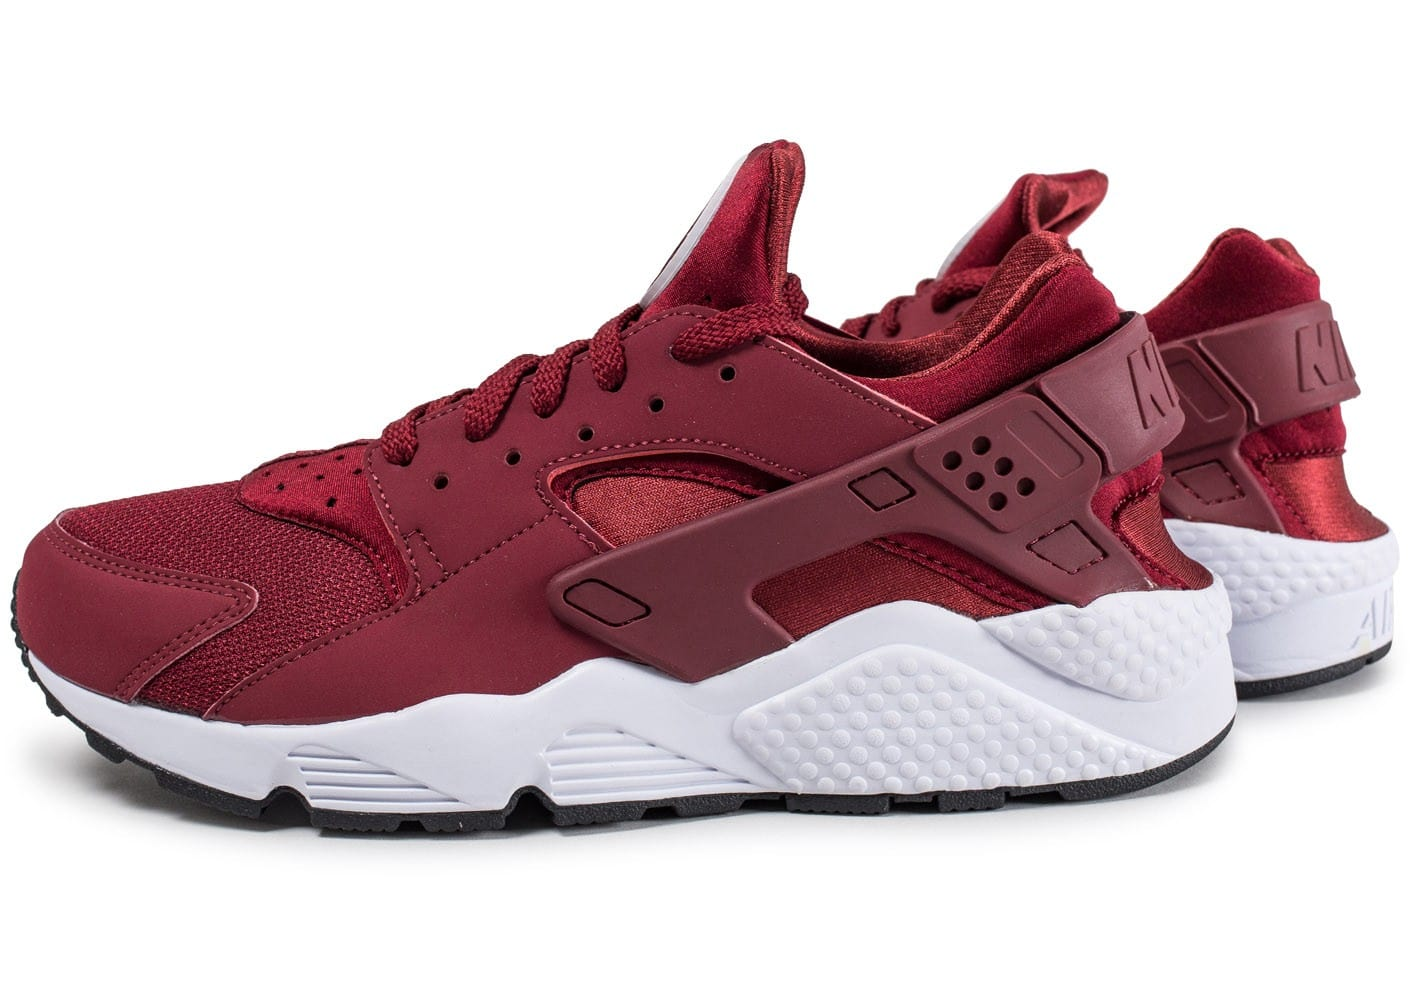 hommes nike air huarache run fonctionnement chaussures rouge. Black Bedroom Furniture Sets. Home Design Ideas